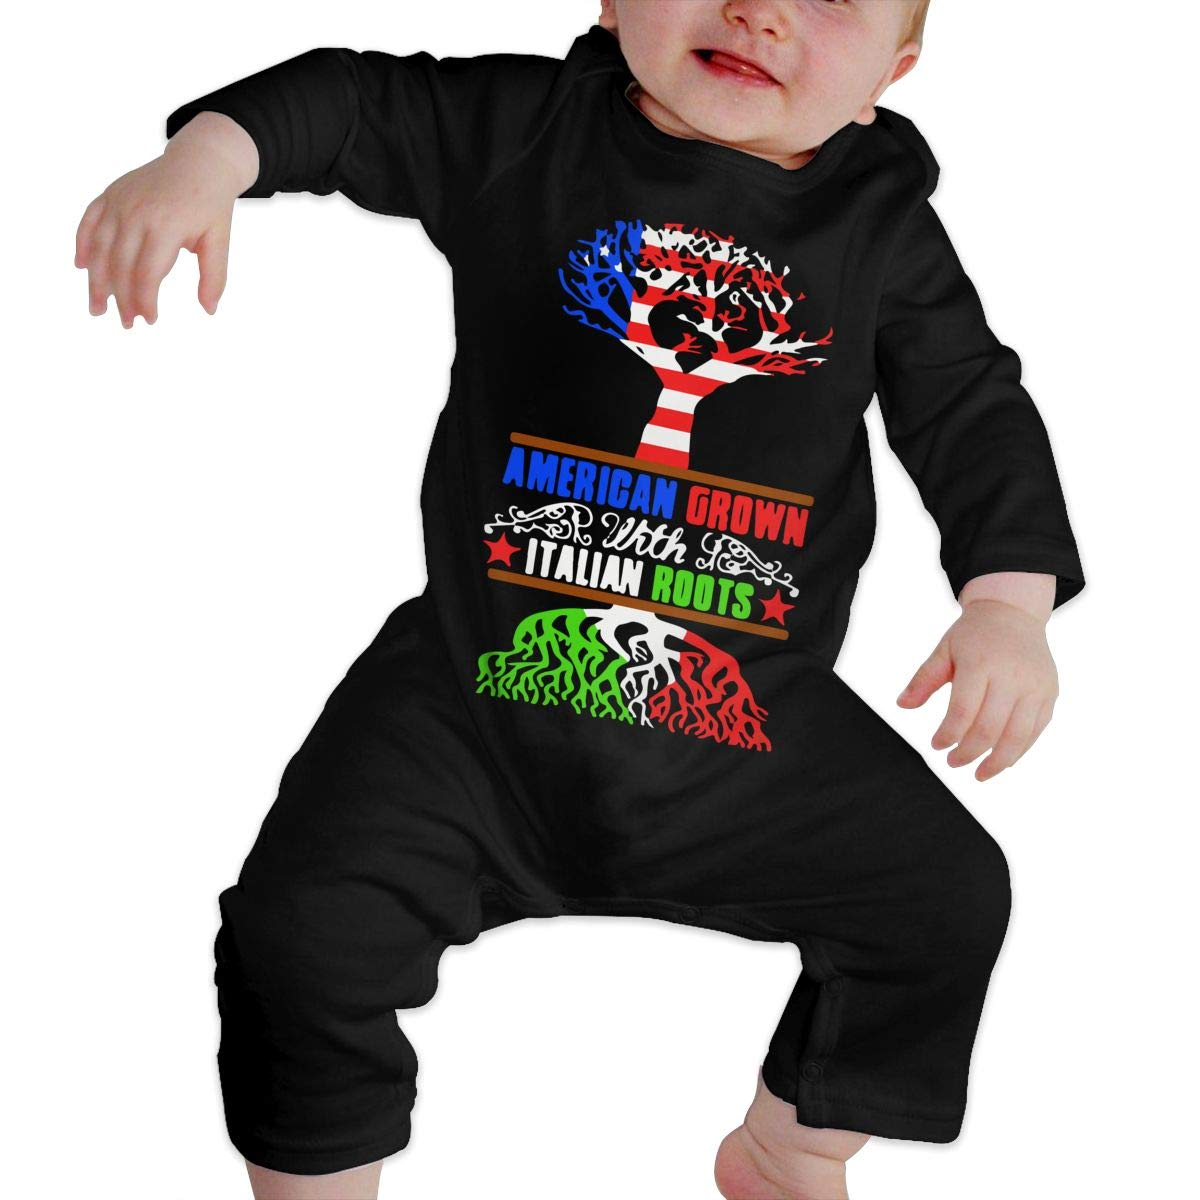 UGFGF-S3 American Grown Italian Roots Toddler Baby Long Sleeve Bodysuit Toddler Jumpsuit